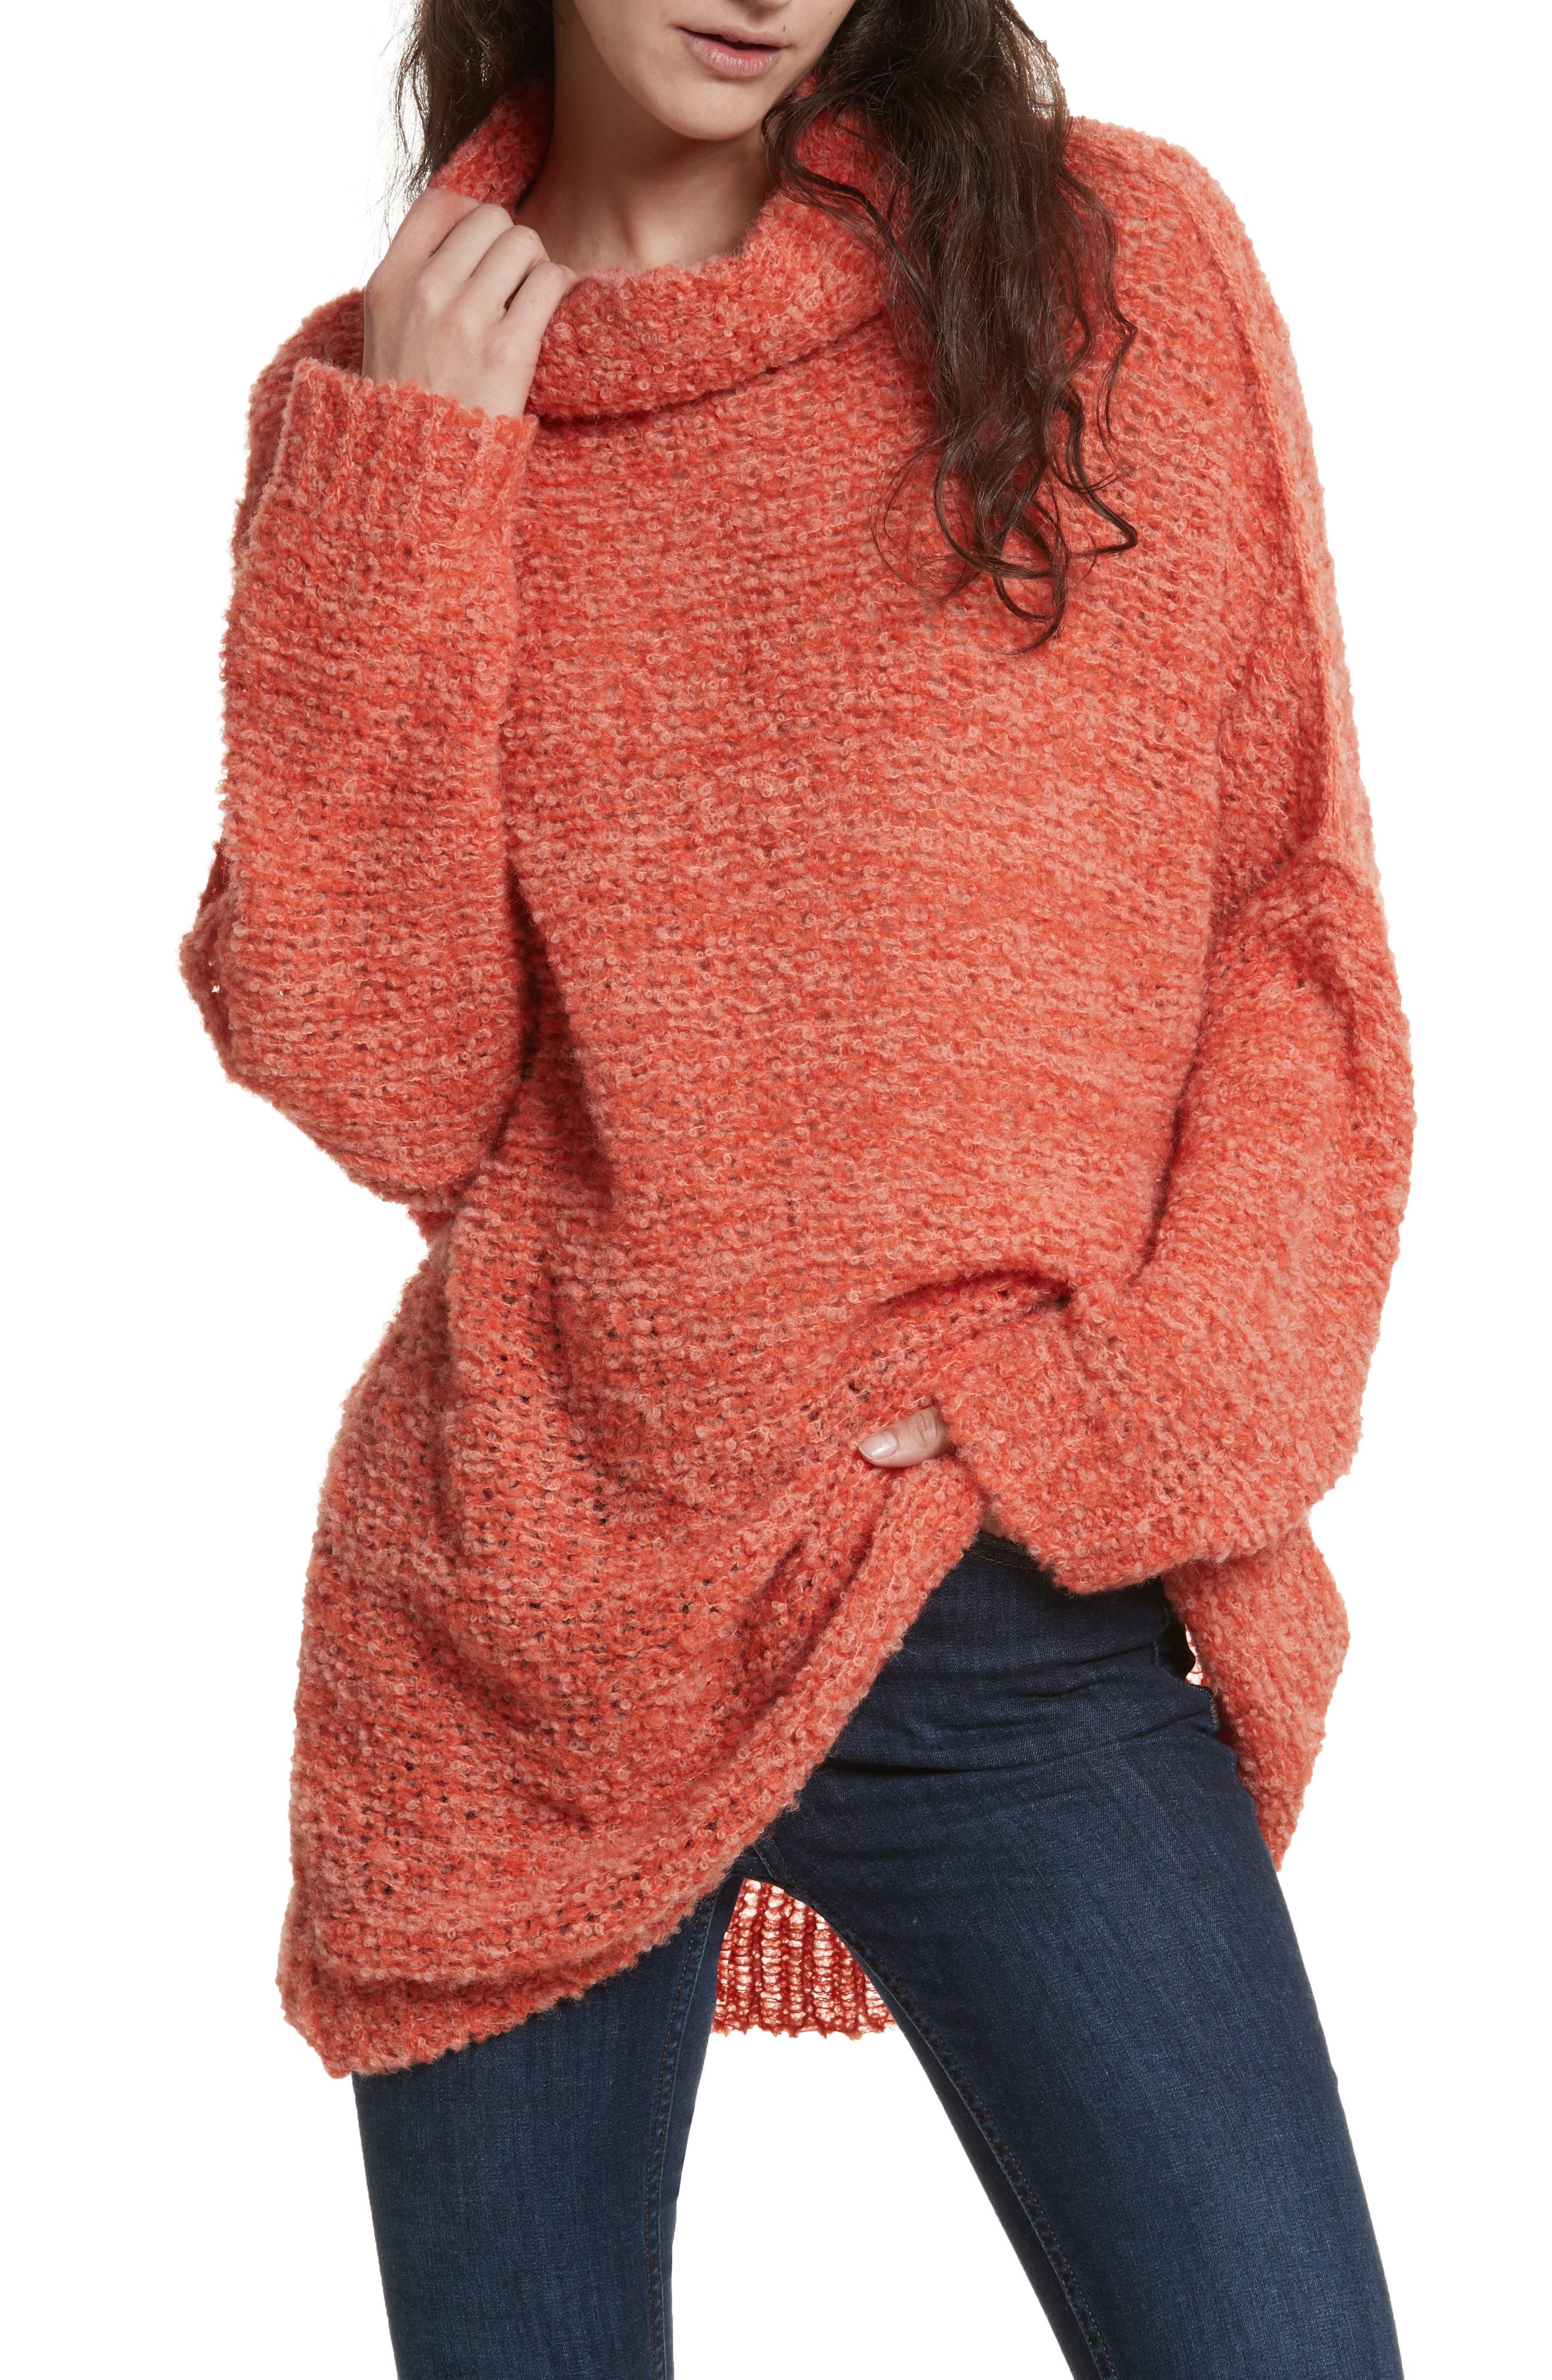 'She's All That' Knit Turtleneck Sweater,                         Main,                         color, Orange